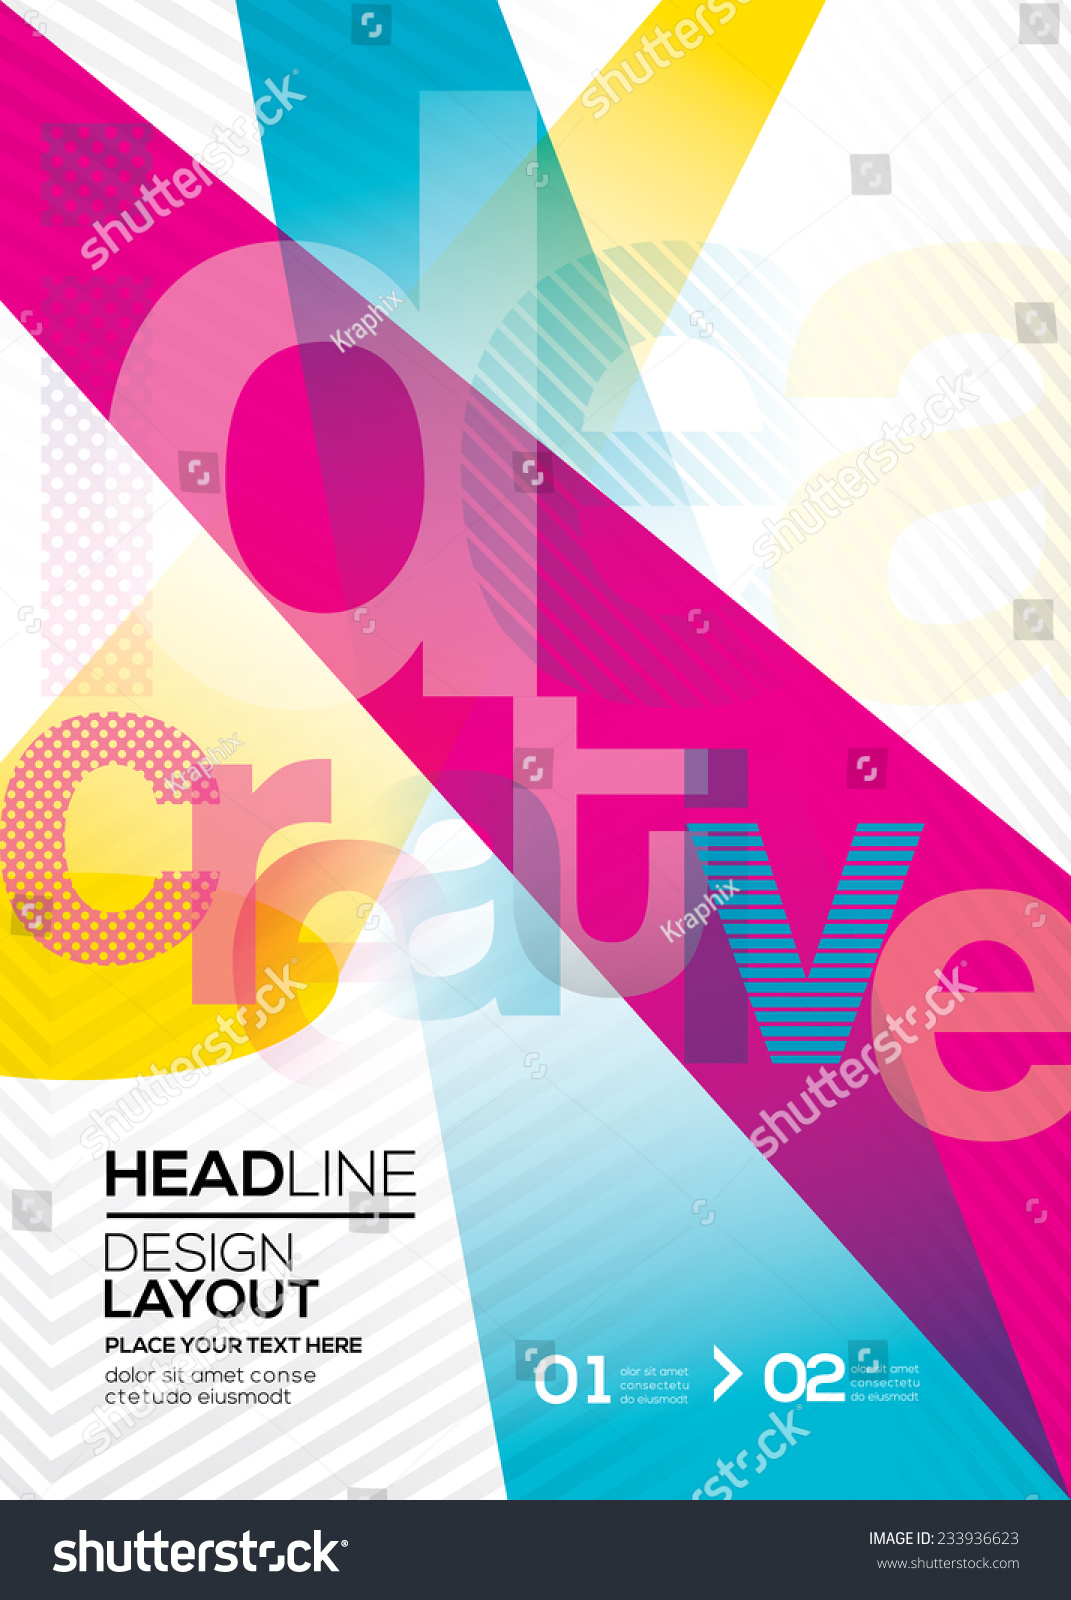 Book Cover Design Background : Cmyk vector abstract design layout background for flyer